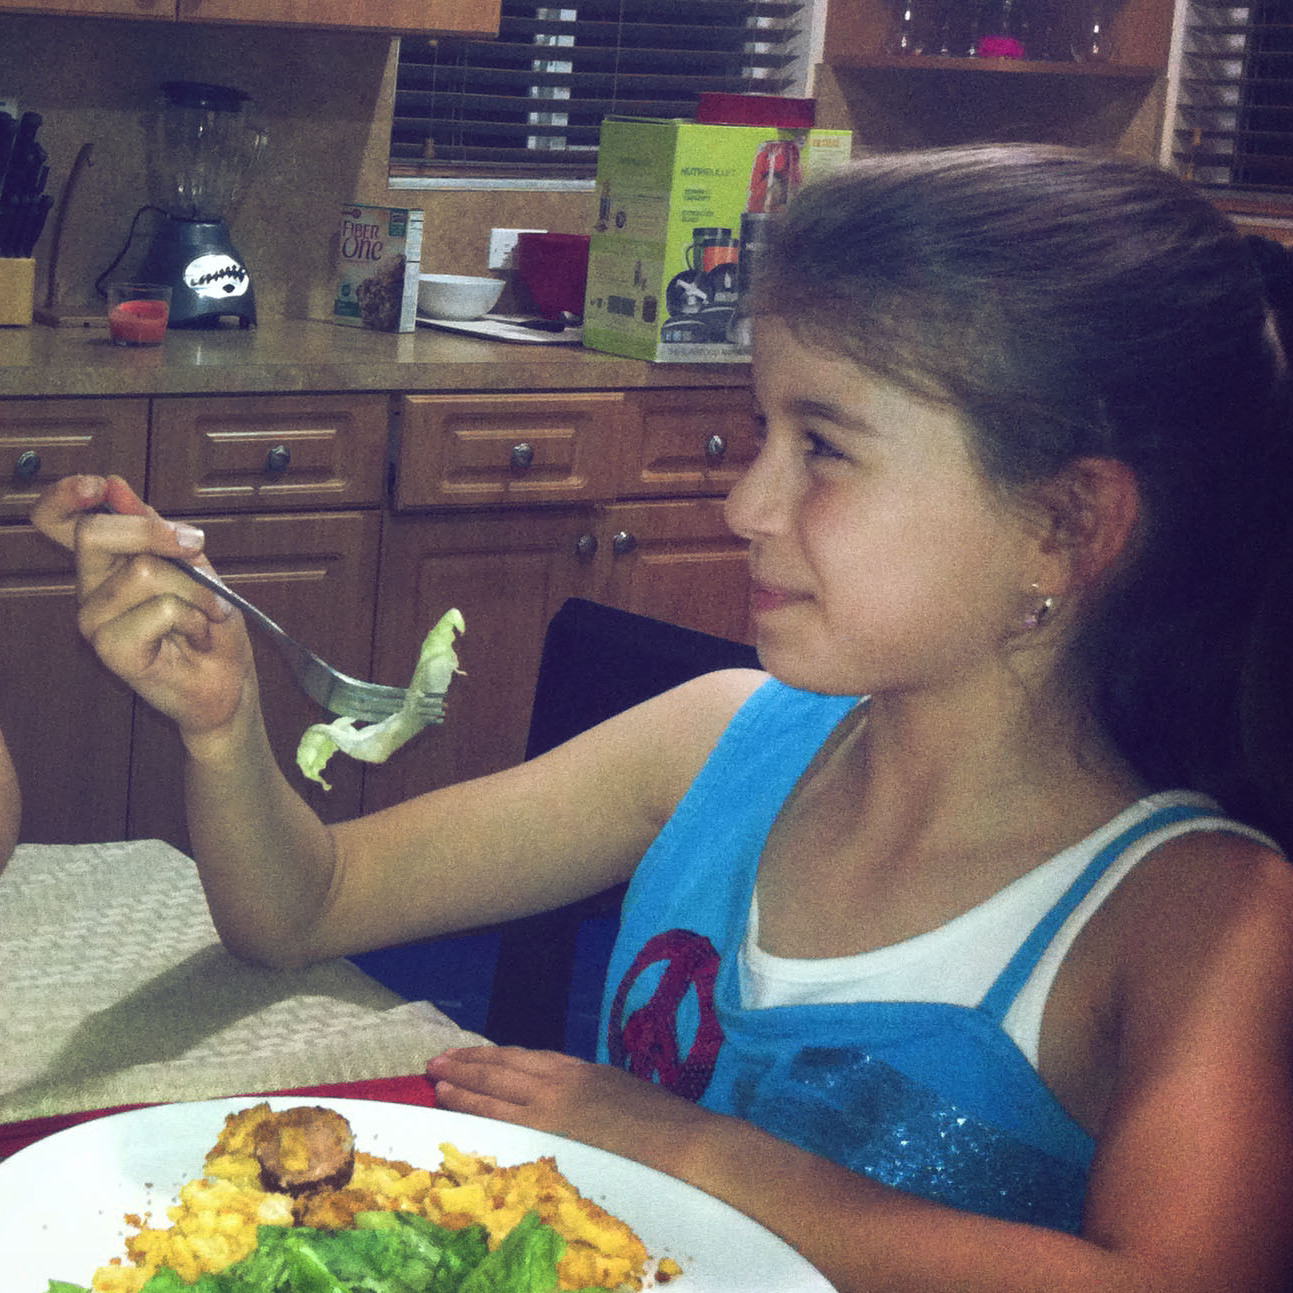 Vanessa Benavides, a Cuban-American single mom, and her 7-year-old daughter, Emily, eat dinner together at their home in Miami.